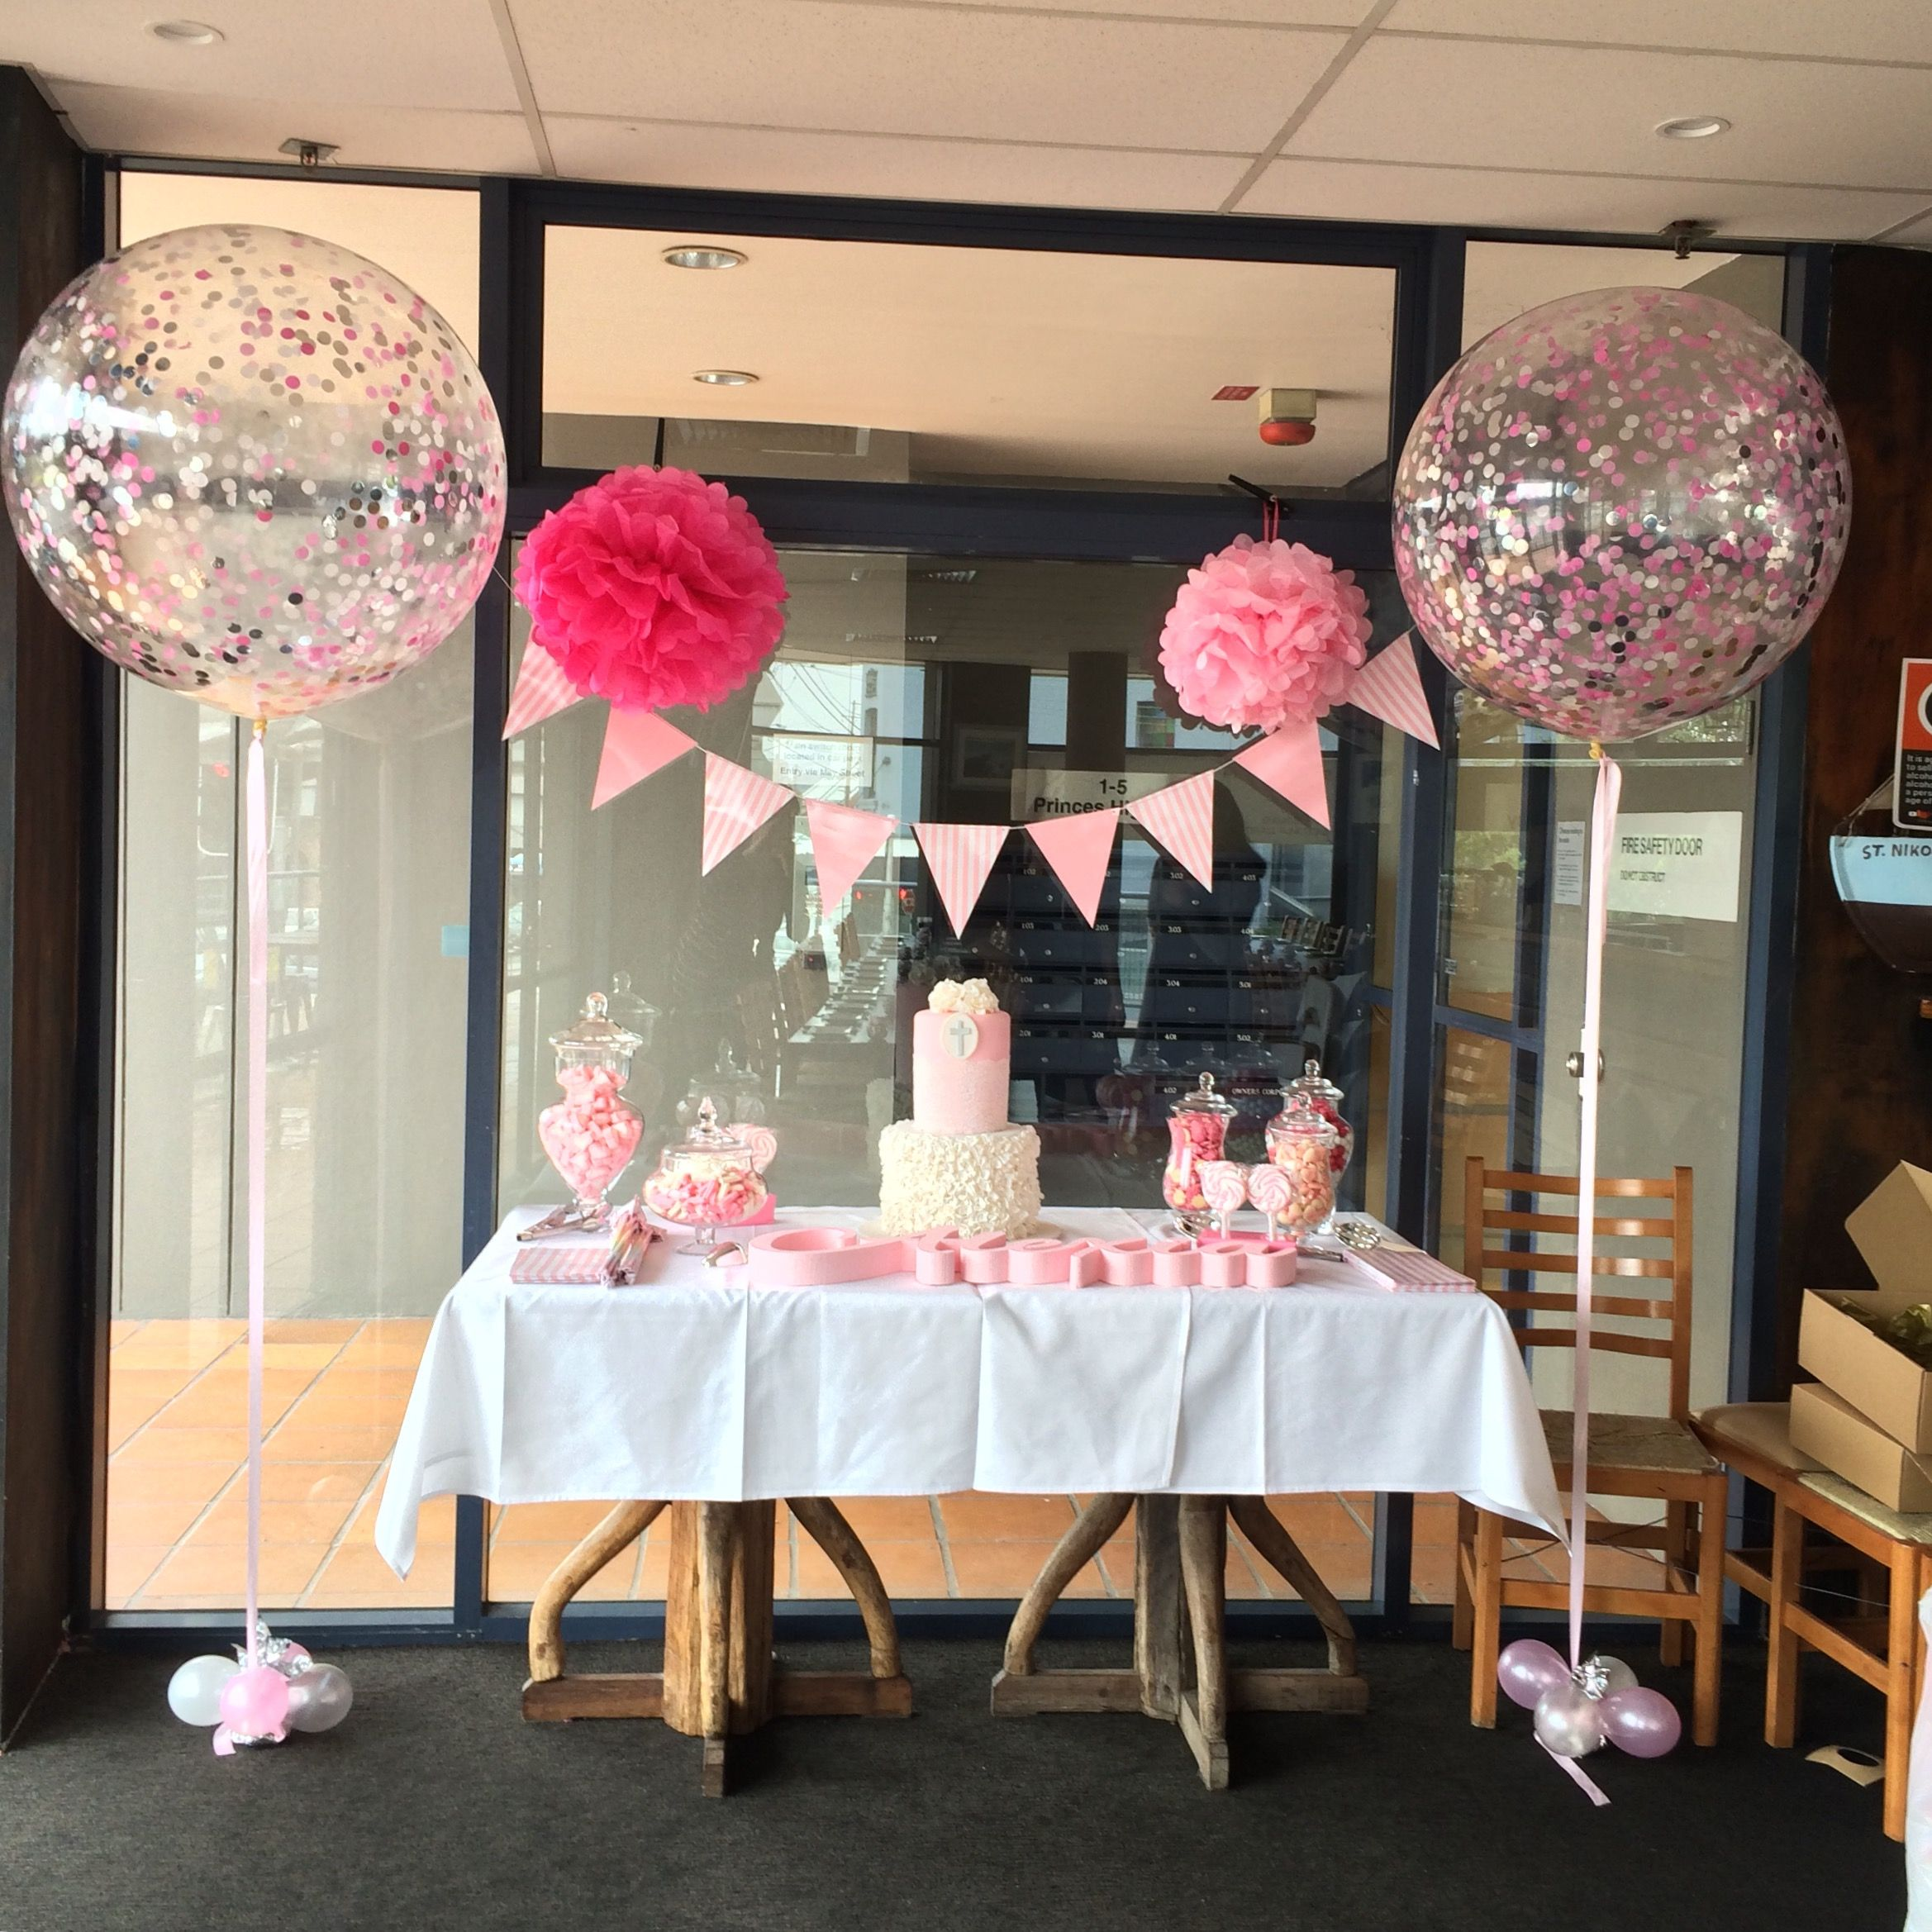 Romantic table decorations for birthday - Cake Table Decor Giant Confetti Balloons